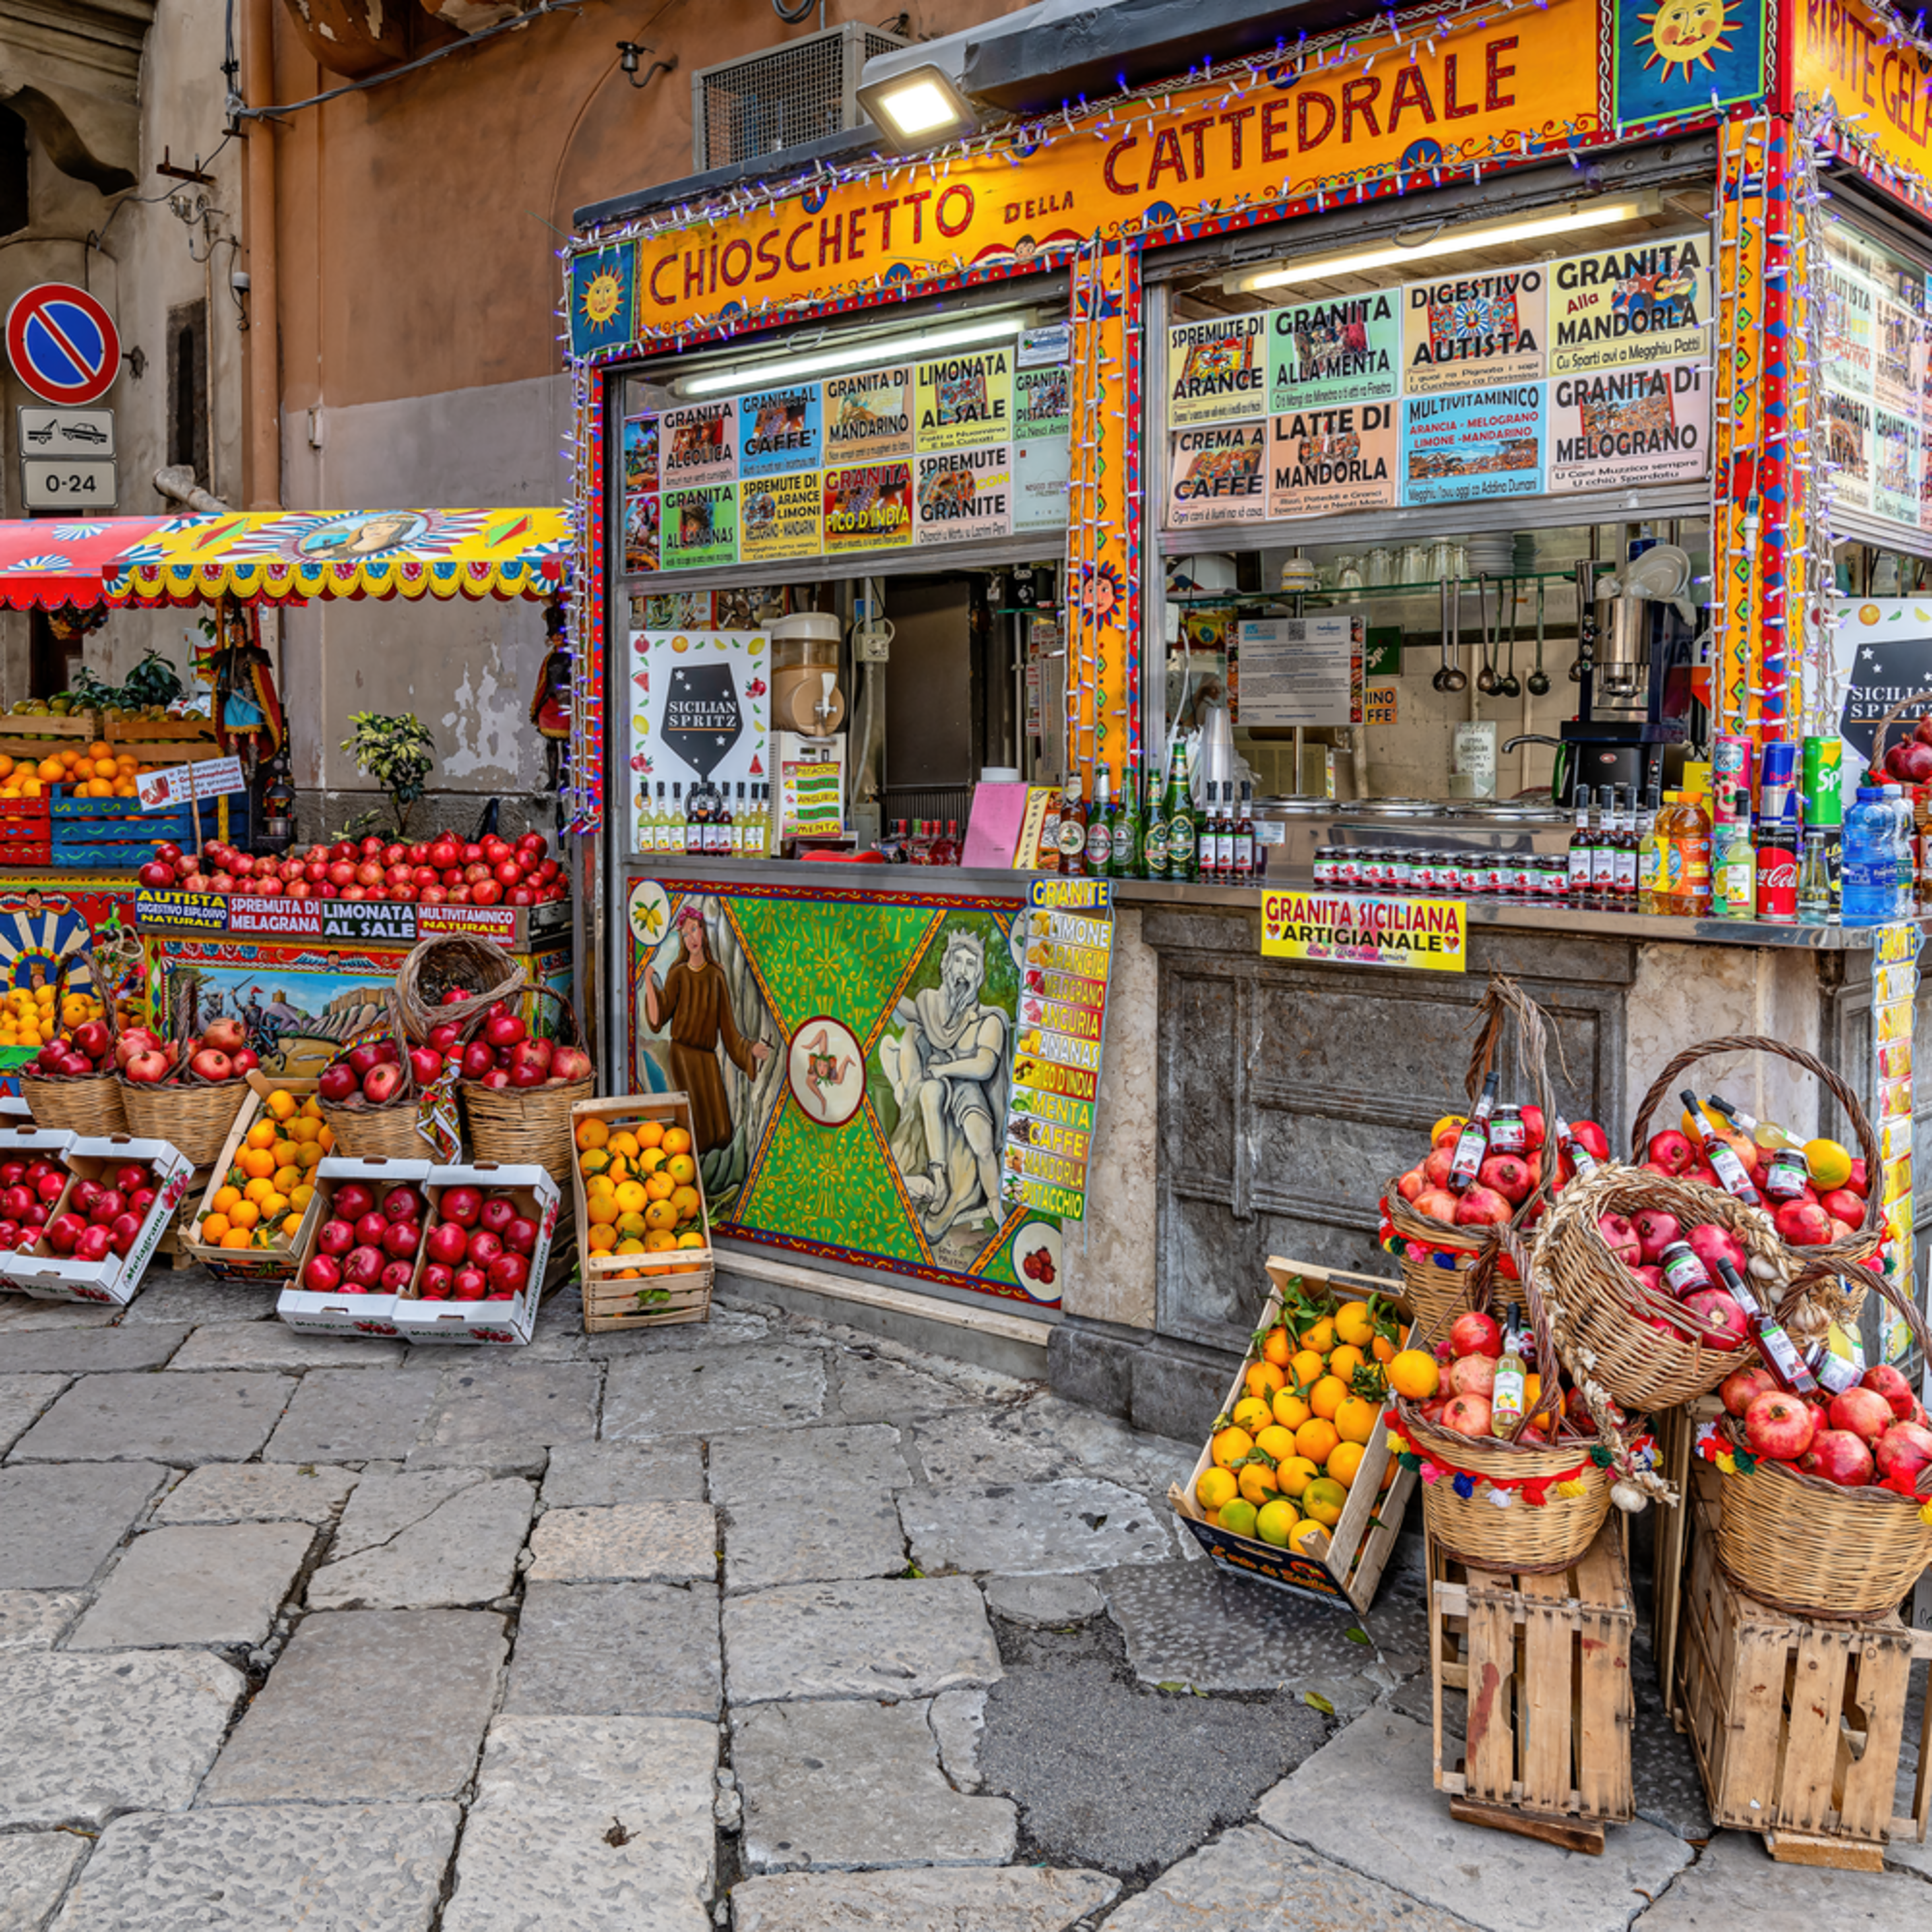 Fruit stand in palermo sicily italy hrjy9p